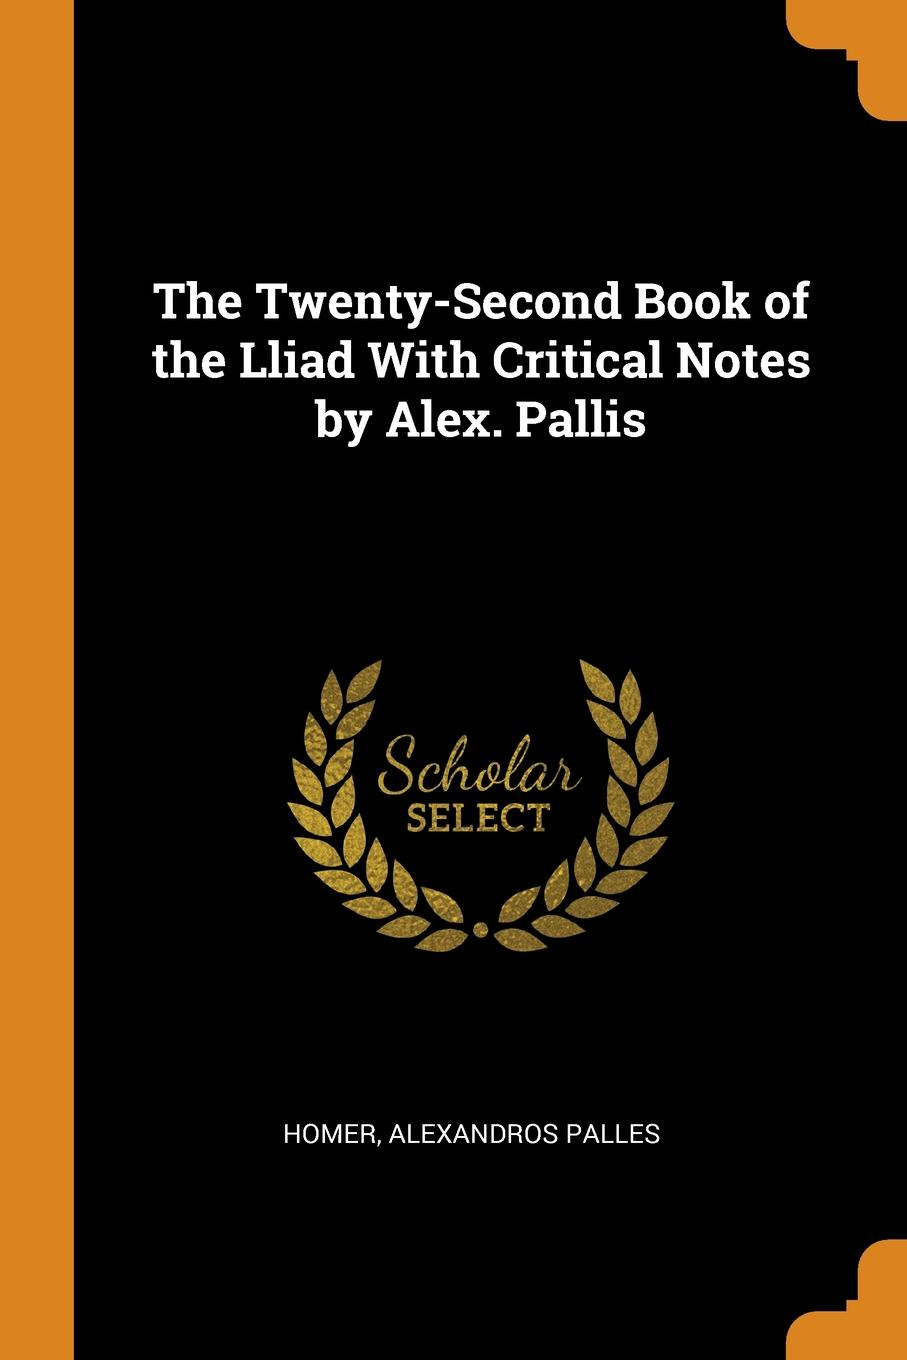 Homer, Alexandros Palles The Twenty-Second Book of the Lliad With Critical Notes by Alex. Pallis